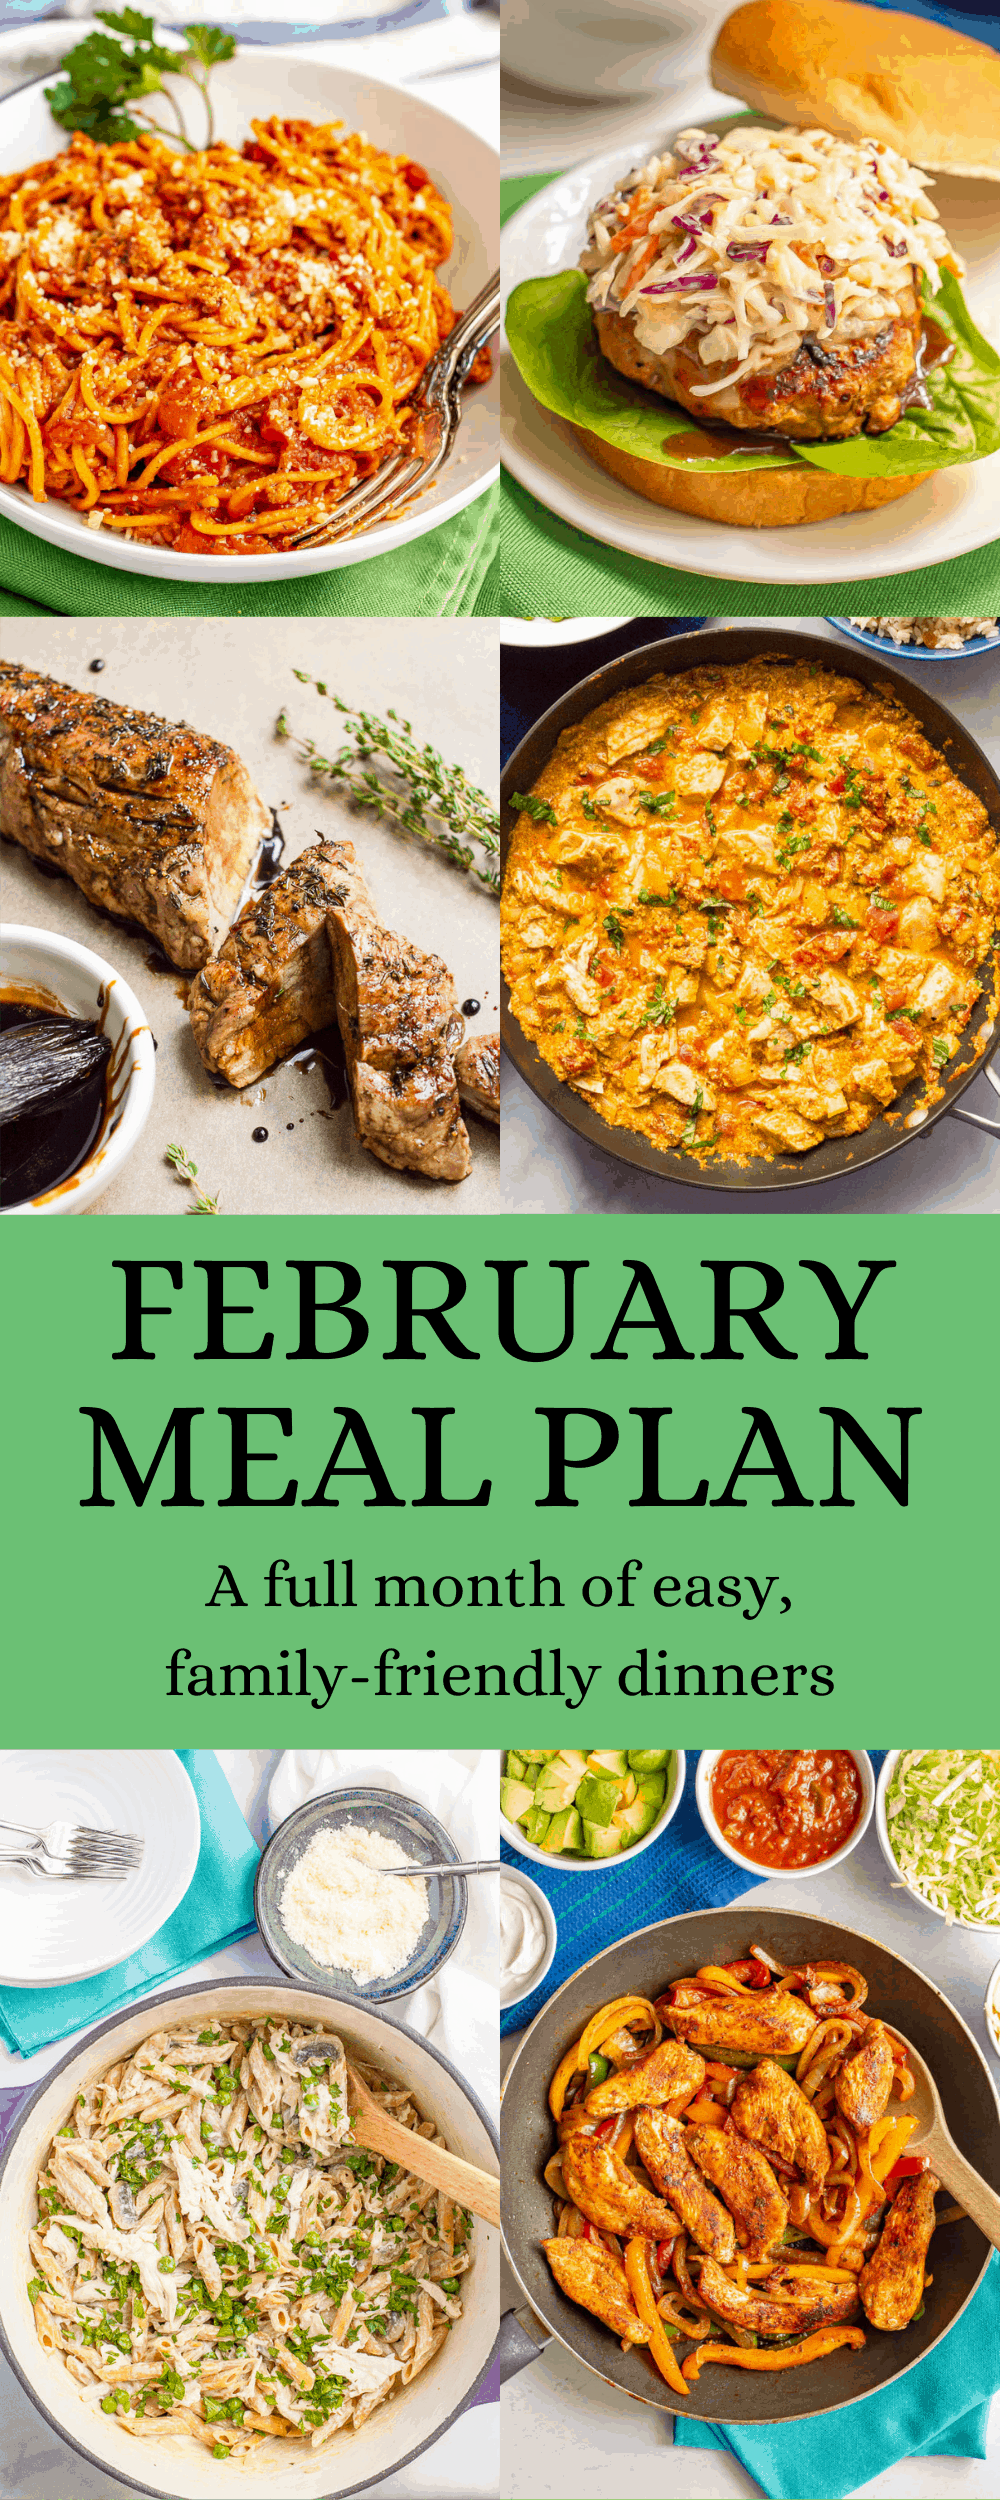 A collage of easy dinner ideas for February with a green text block